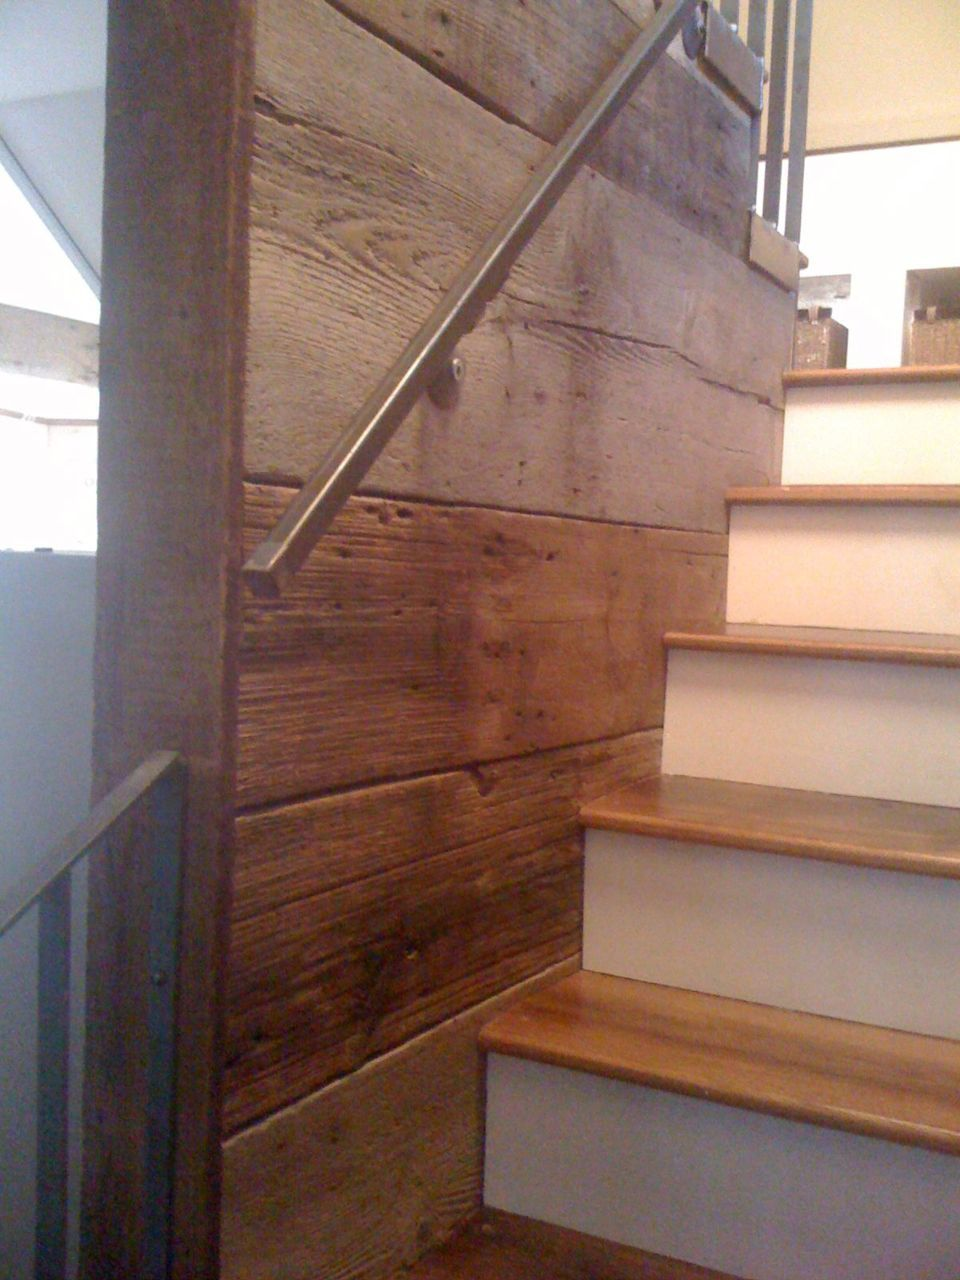 Barn siding and reclaimed chestnut stair treads. Great stairwell idea!